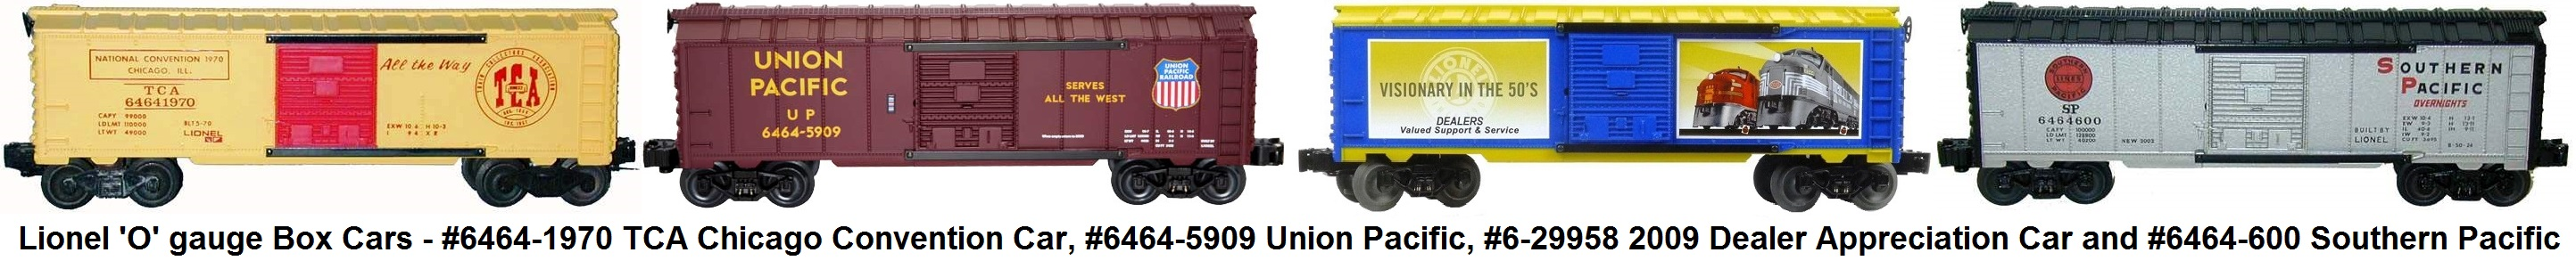 Lionel 'O' gauge #6464-1970 TCA Chicago Convention Car, #6464-5909 Union Pacific, #6-29958 2009 Dealer Appreciation Car and #6464-600 Southern Pacific Box Cars